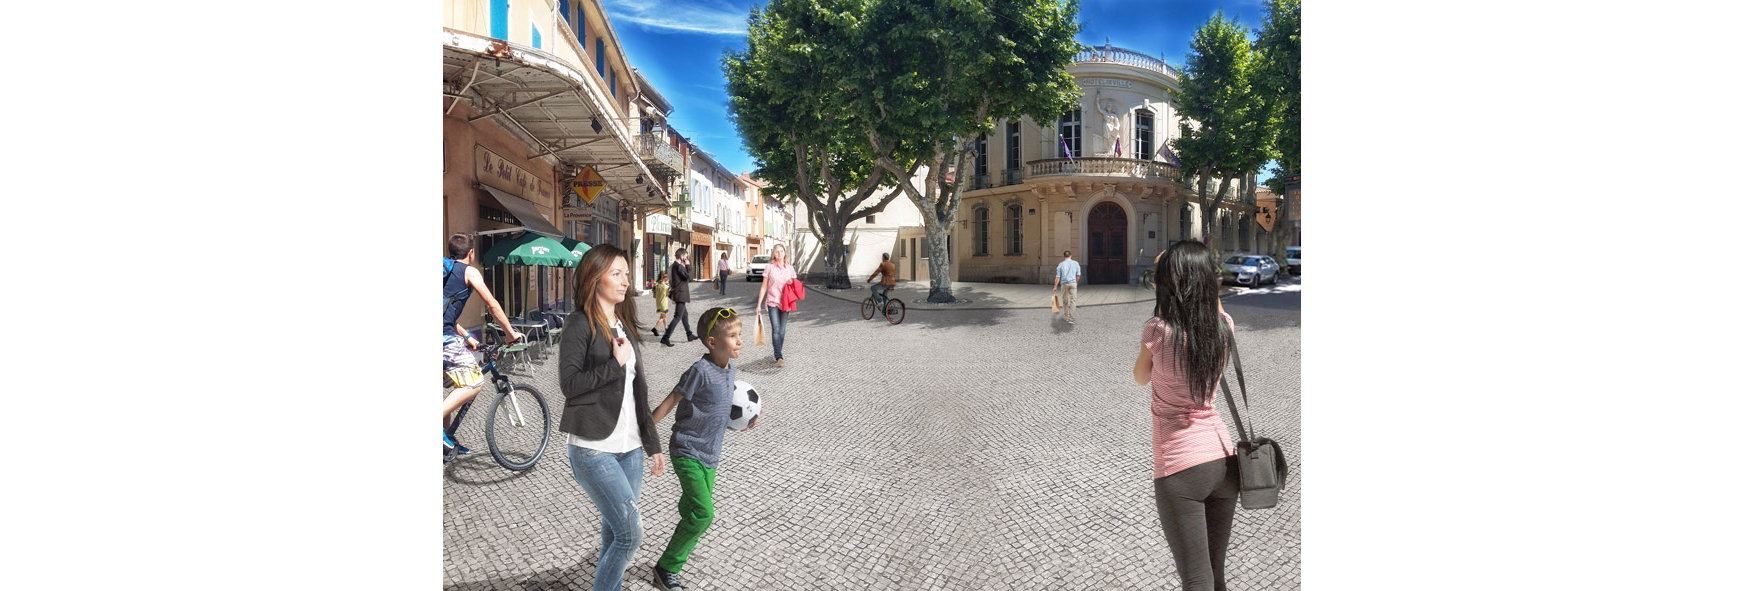 Concours St Chamas 3-Place Mairie